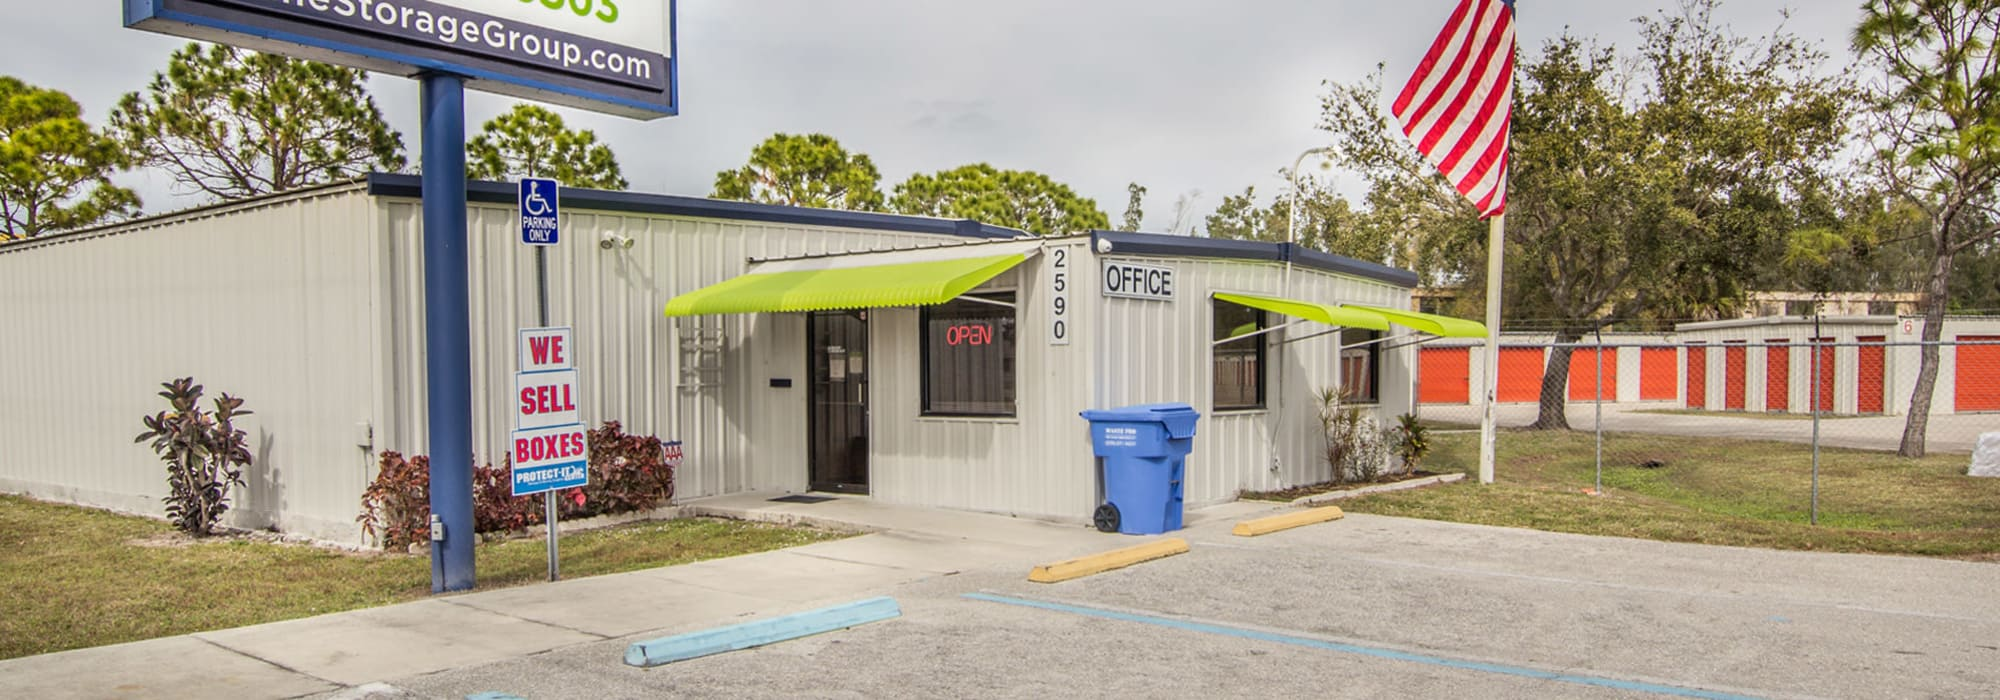 Prime Storage in North Fort Myers, FL